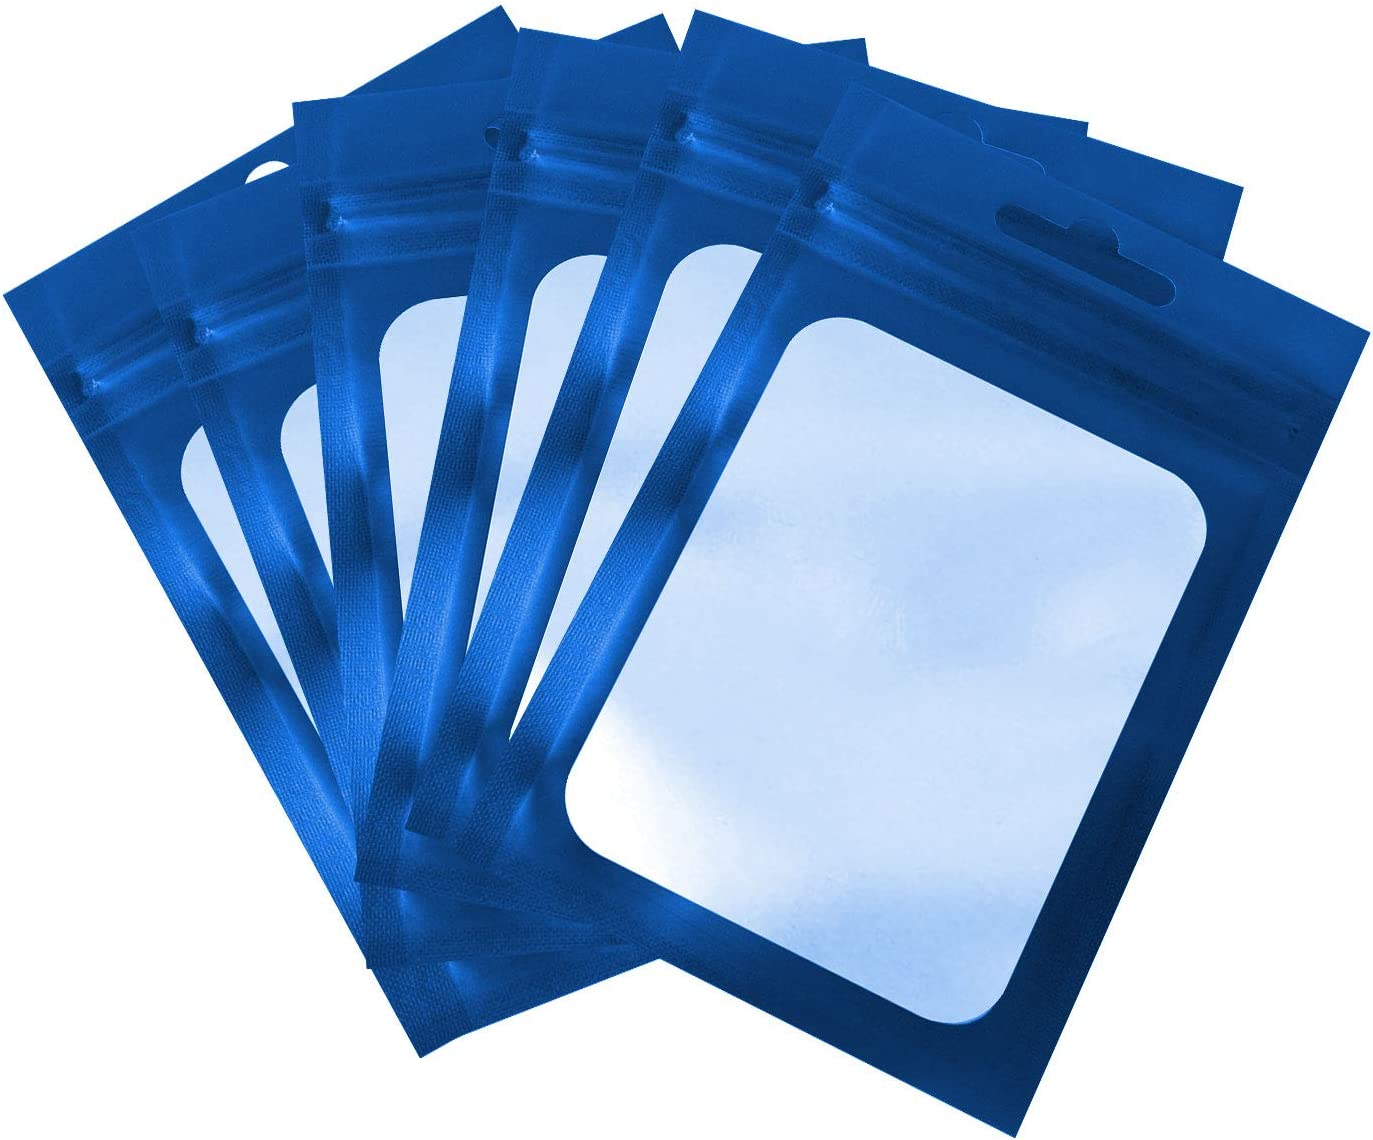 100 Pieces Resealable Mylar Ziplock Food Storage Bags with Clear Window Coffee Beans Packaging Pouch for Food Self Sealing Storage Supplies,Party Favor Food Storage(Blue) (3X4.7 Inch)